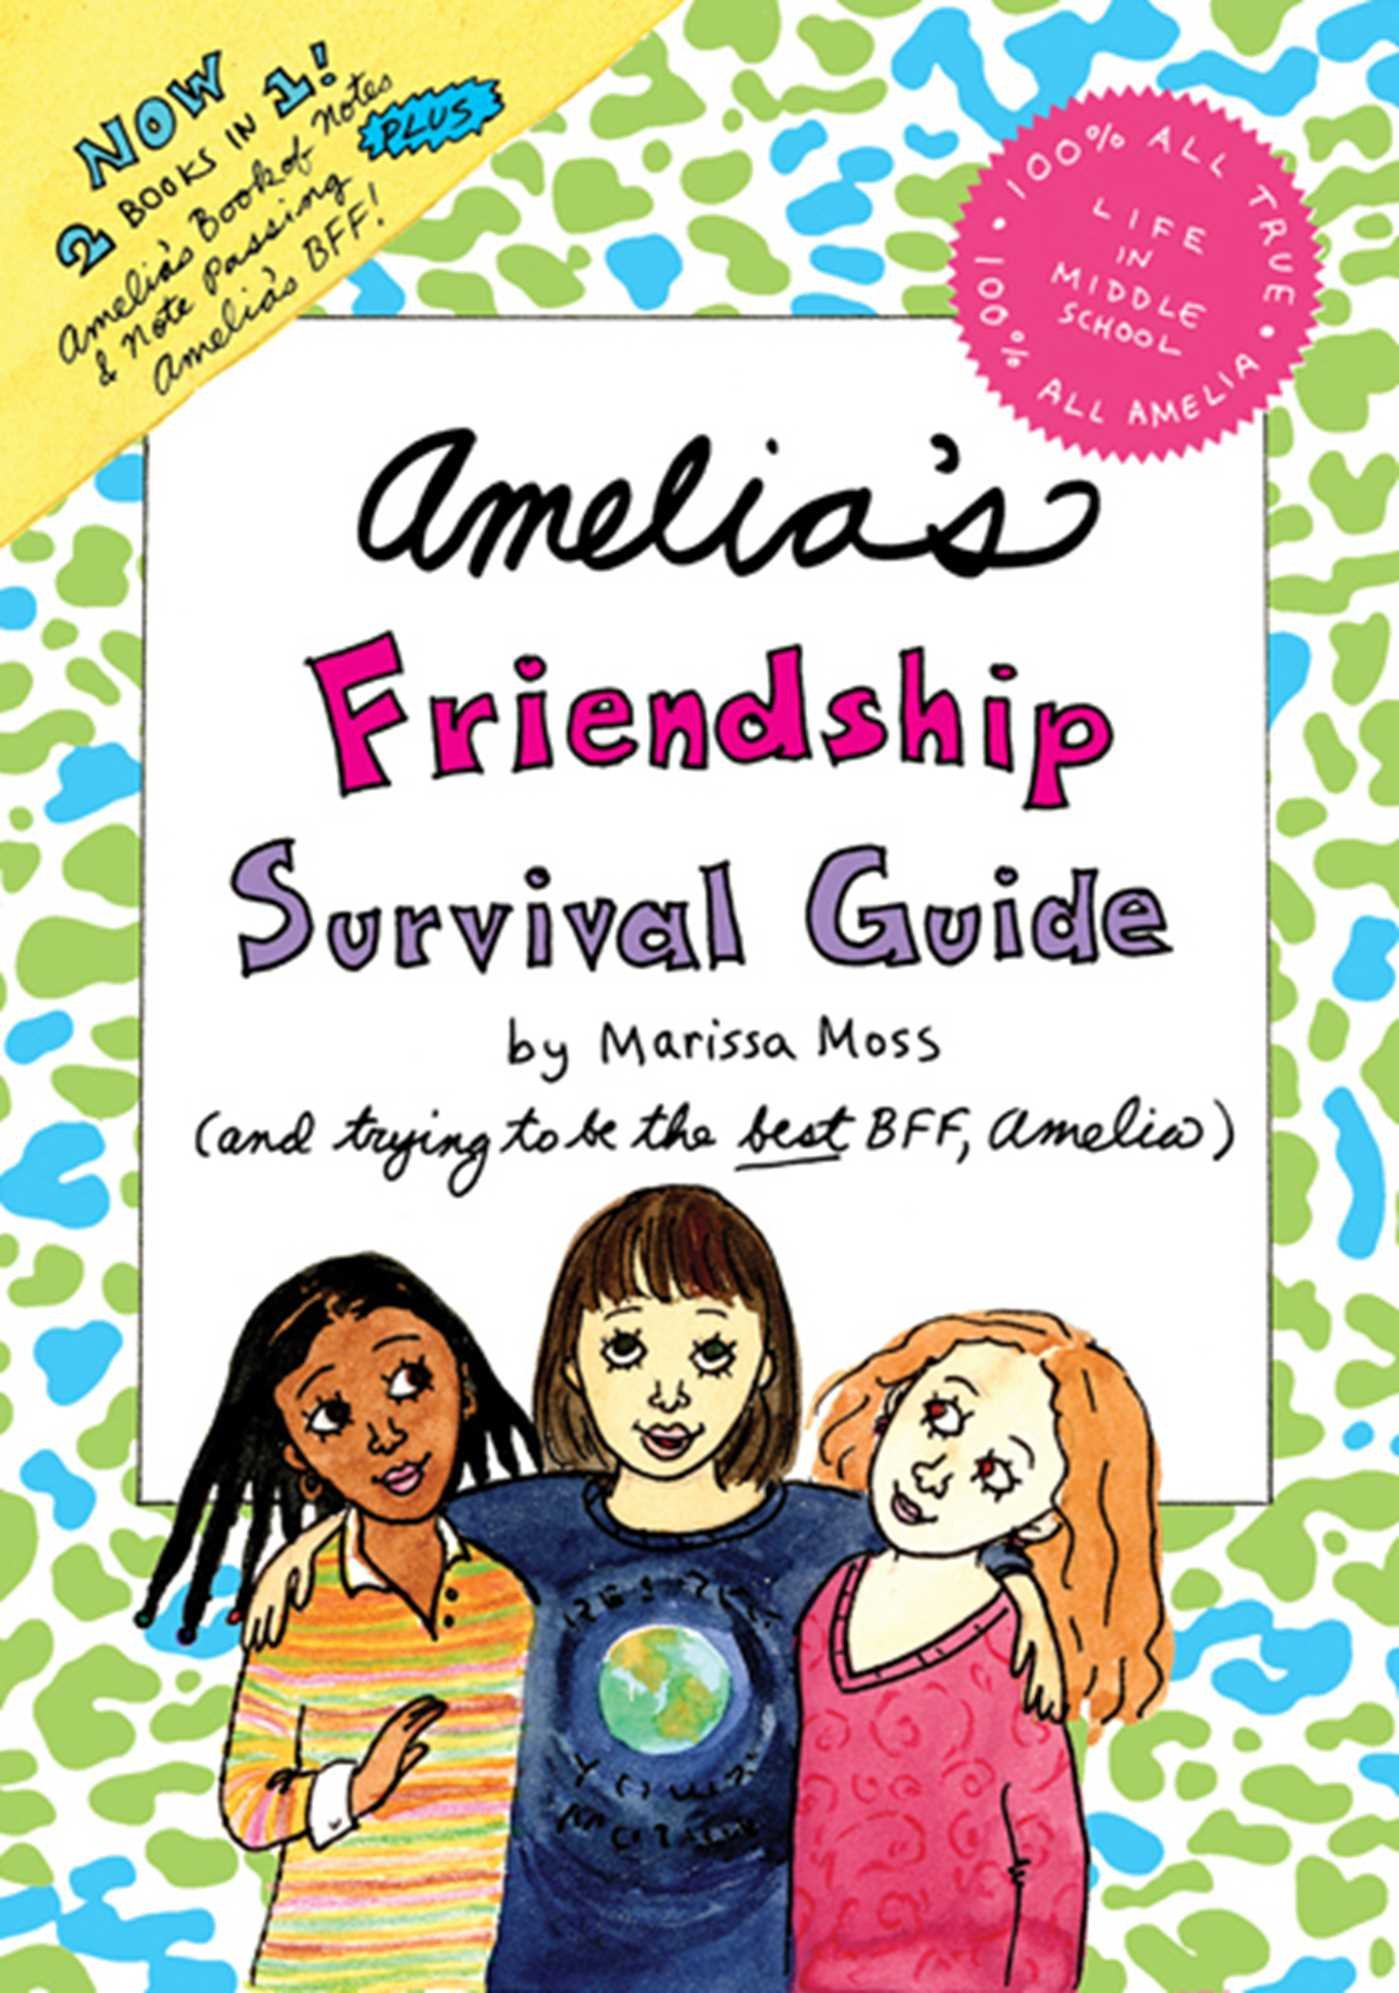 Amelia's Friendship Survival Guide: Amelia's Book of Notes & Note Passing;  Amelia's BFF: Marissa Moss: 9781442483040: Books - Amazon.ca